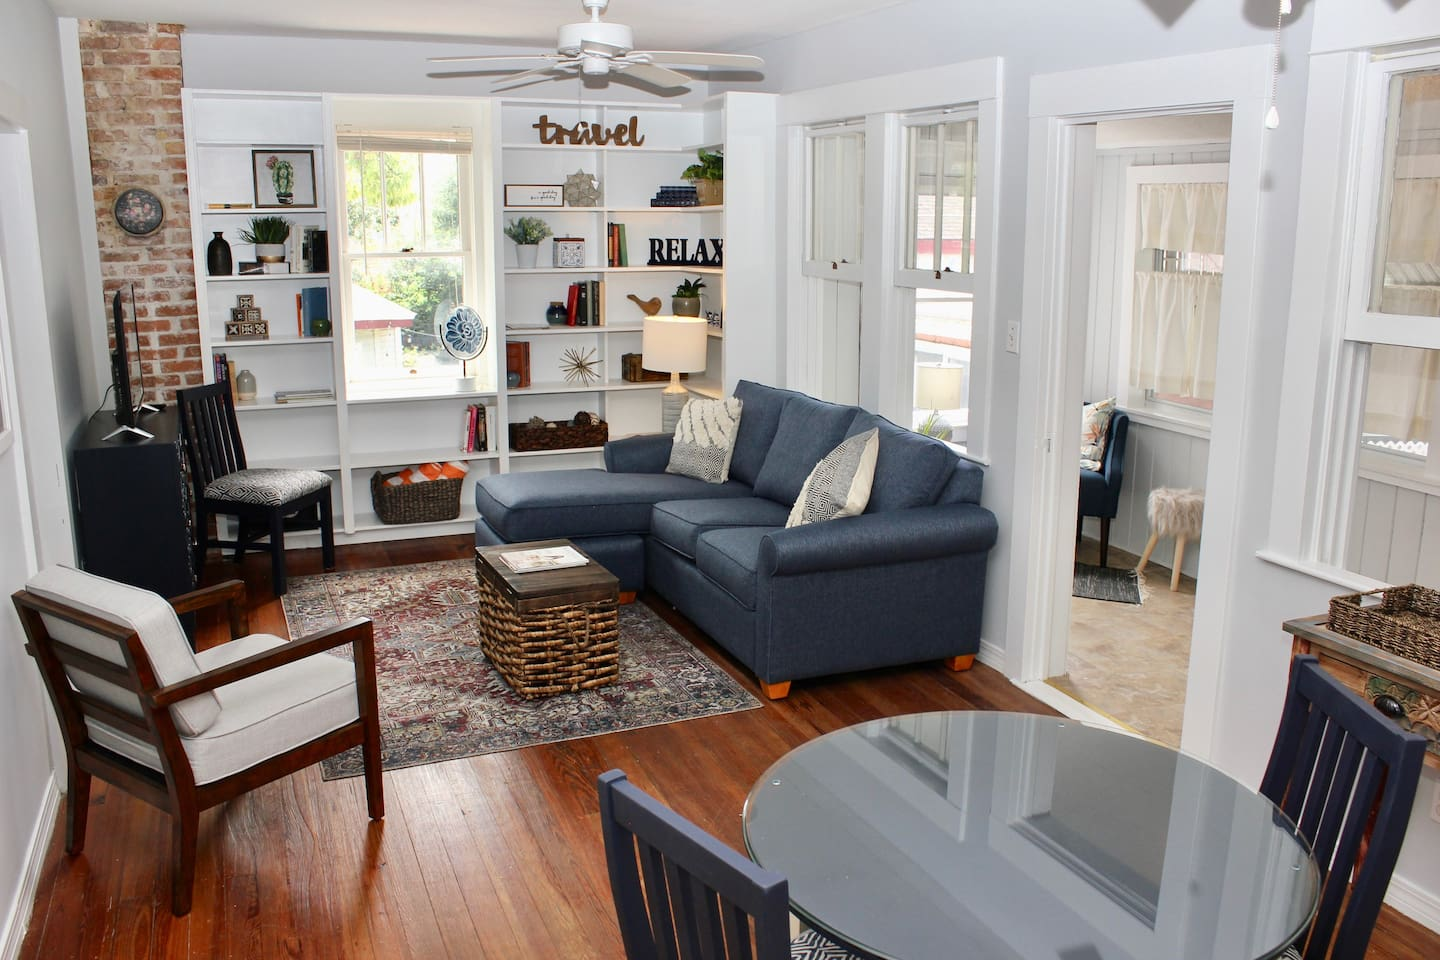 Retreat in the comfortable living room with small dining table for 3, queen-size sofa bed, and flat screen smart TV.